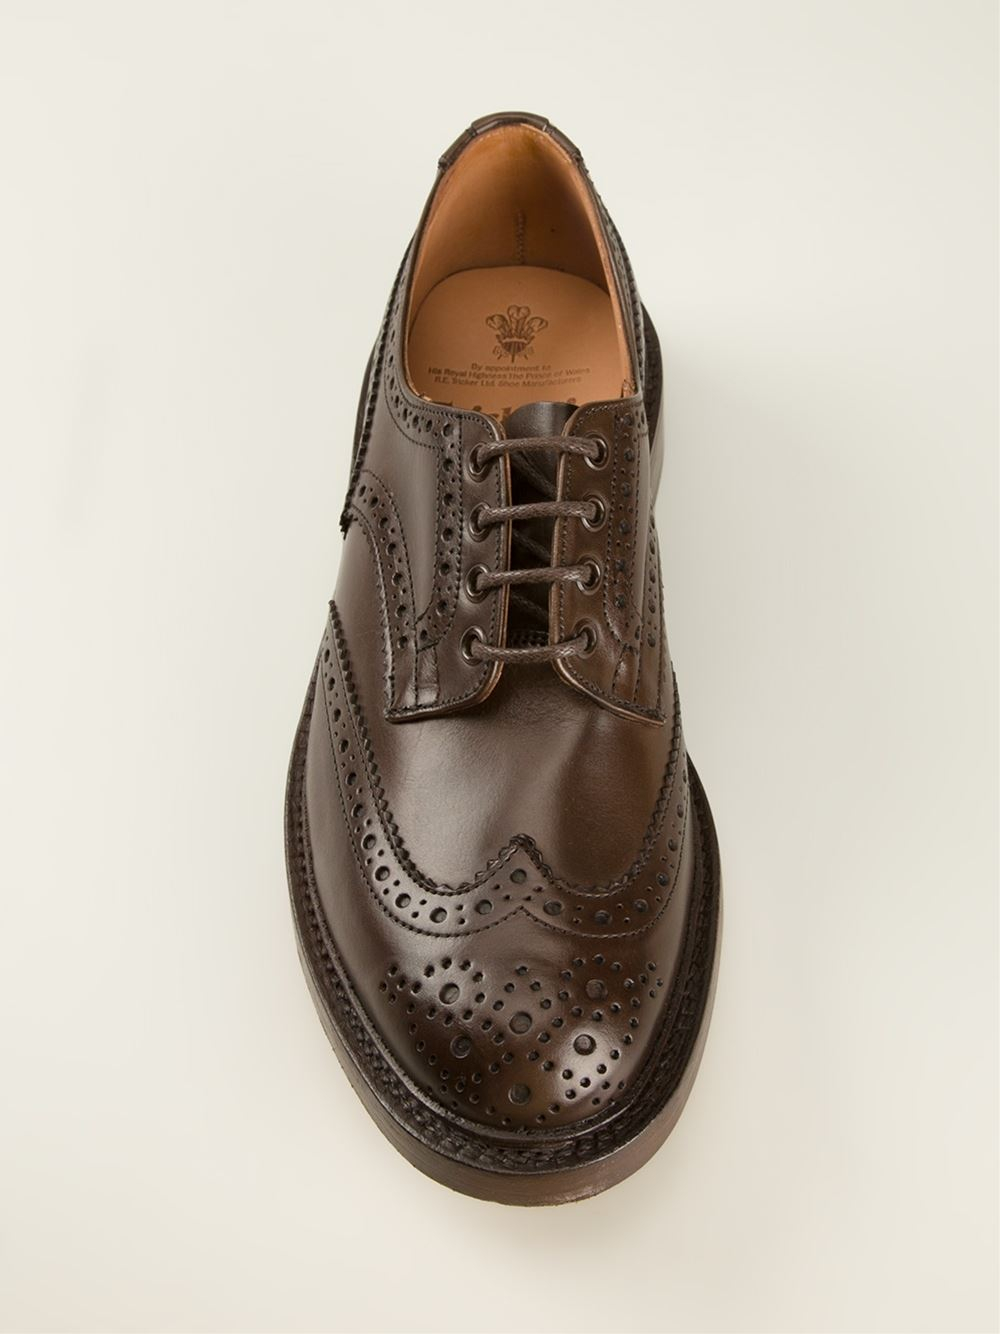 Trickers Shoes Canada